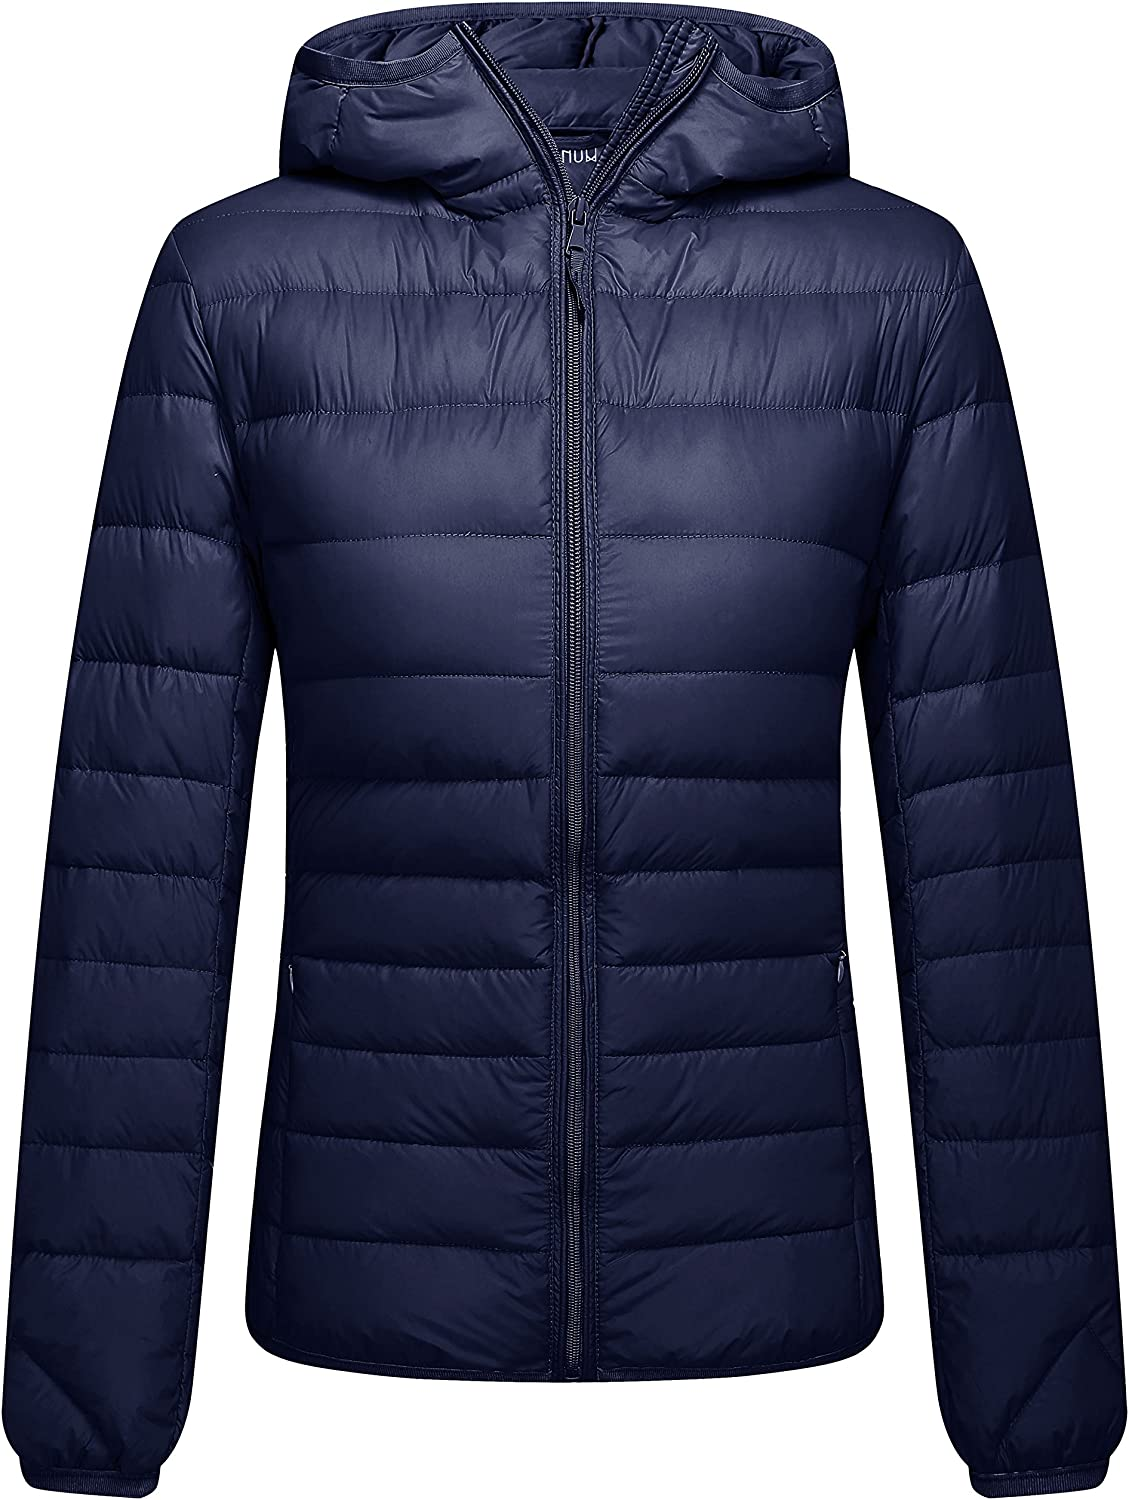 Max 45% OFF ZSHOW Women's Packable Down Coat Free Shipping New Spring Hooded Lightweight Thin